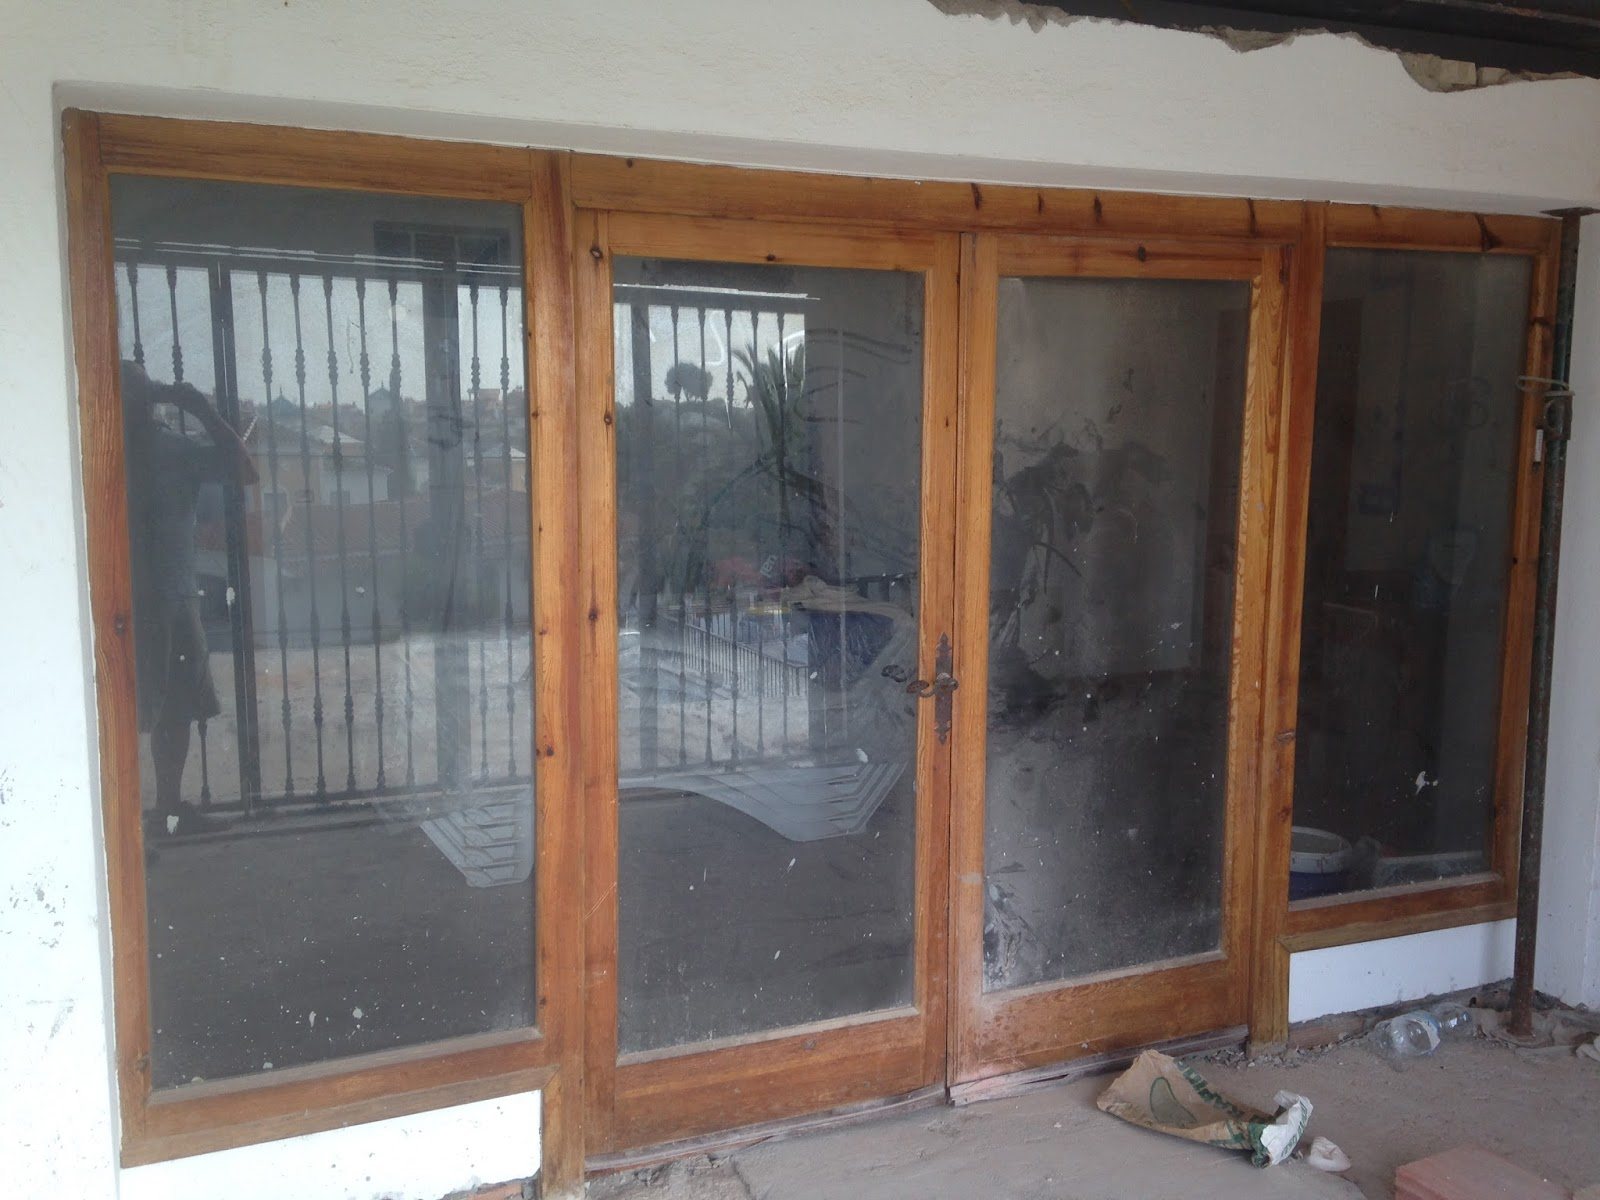 Digame for sale period patio doors for Patio windows for sale